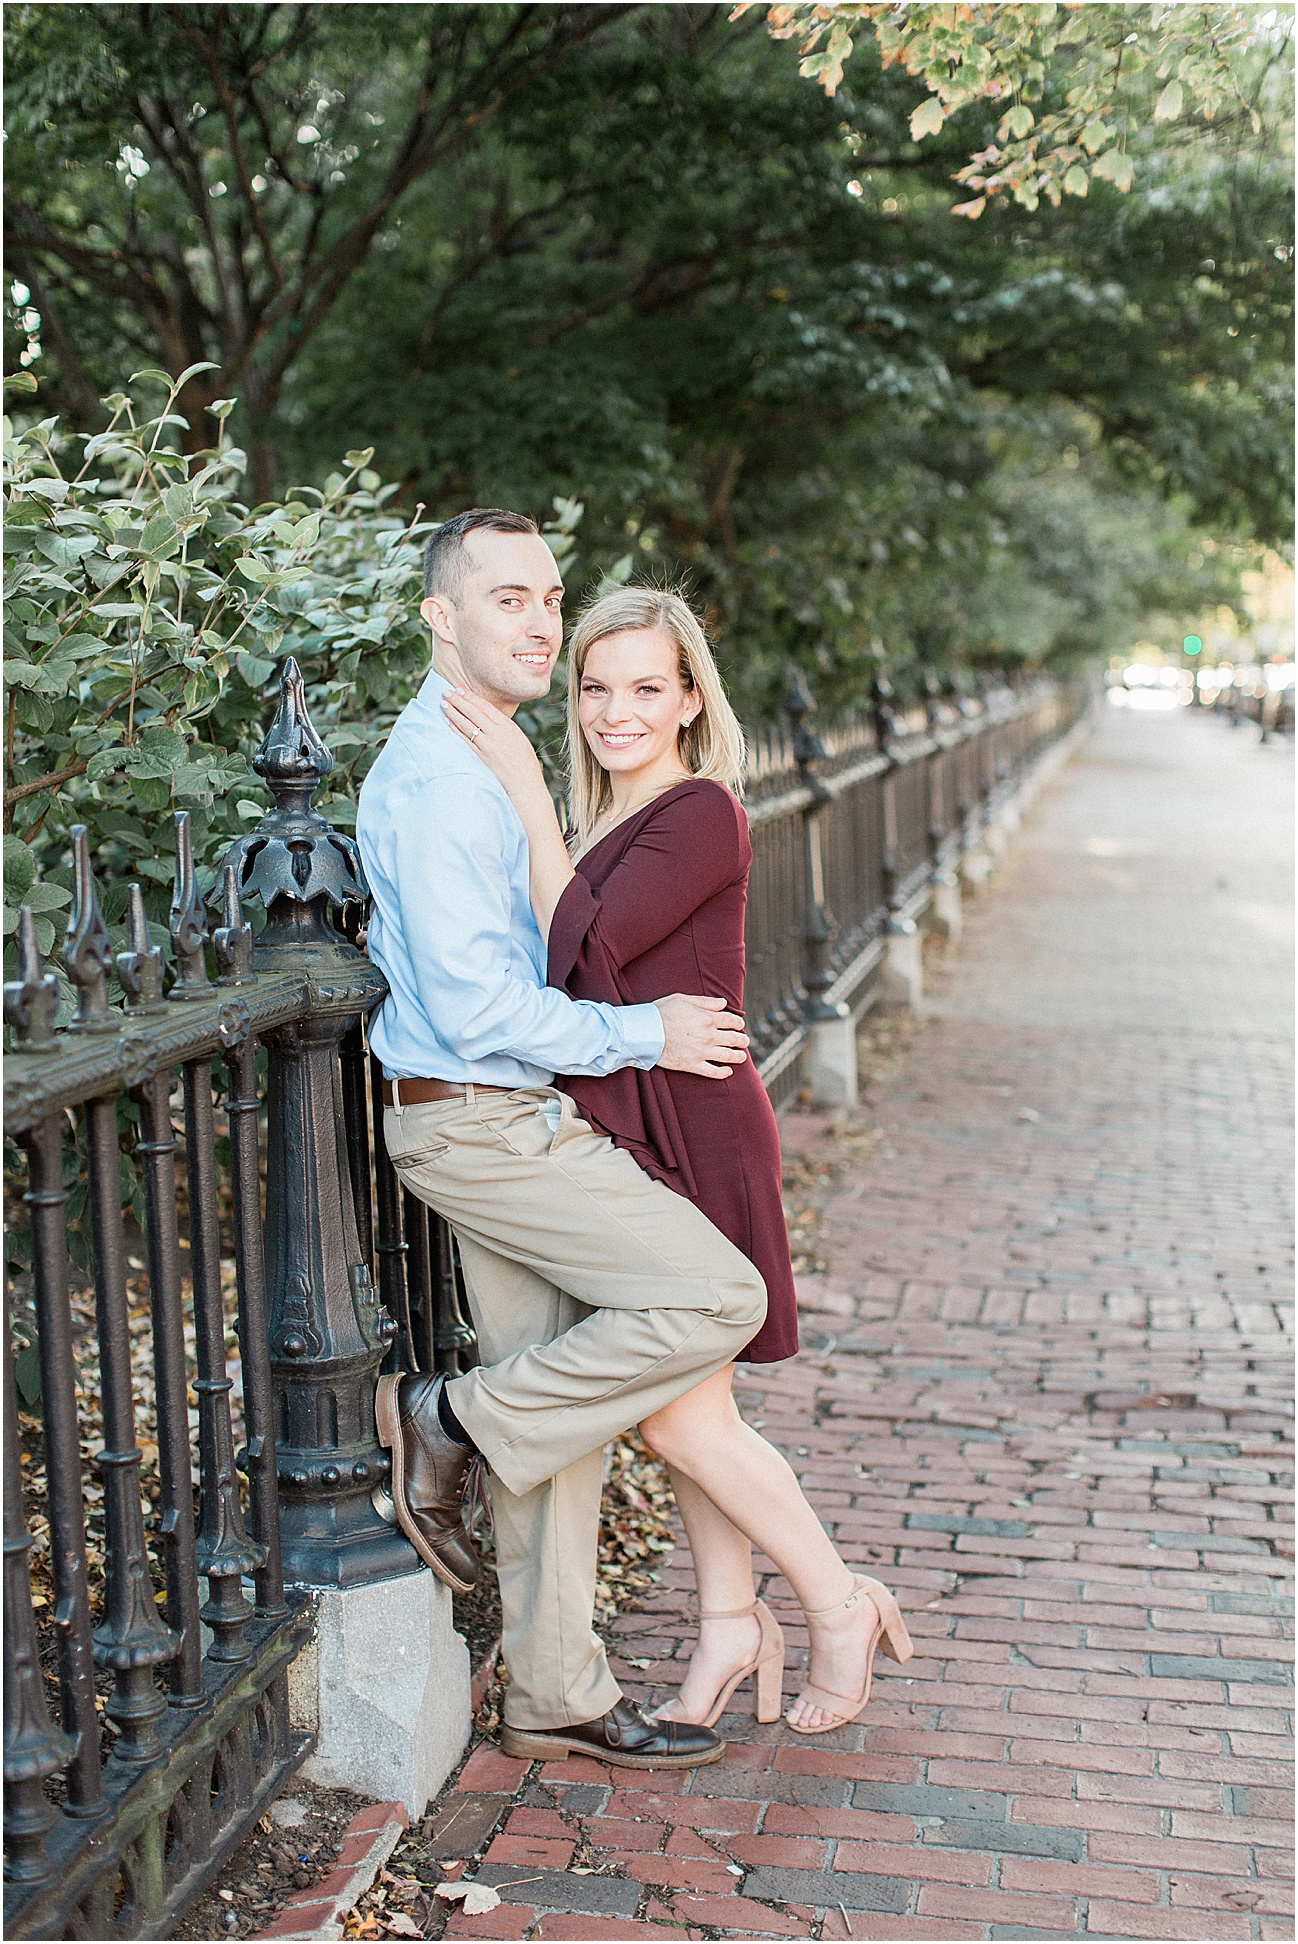 jenny_jared_beacon_hill_acorn_street_seaport_engagement_fall_cape_cod_boston_wedding_photographer_meredith_jane_photography_photo_1528.jpg